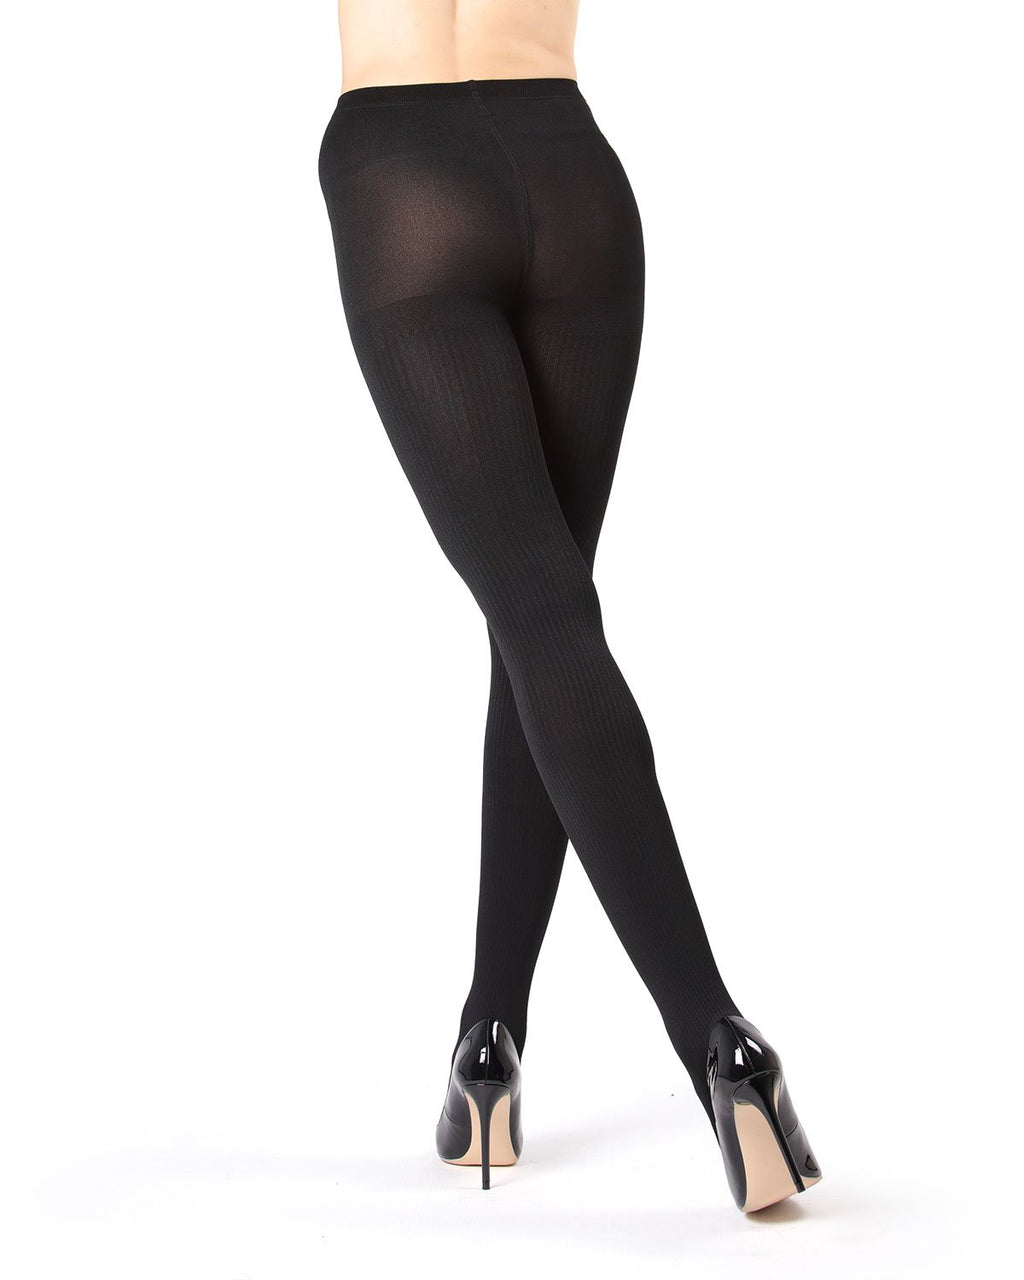 Memoi Black Ribbed Plush Lined Fleece Tights | Women's Hosiery - Pantyhose - Nylons